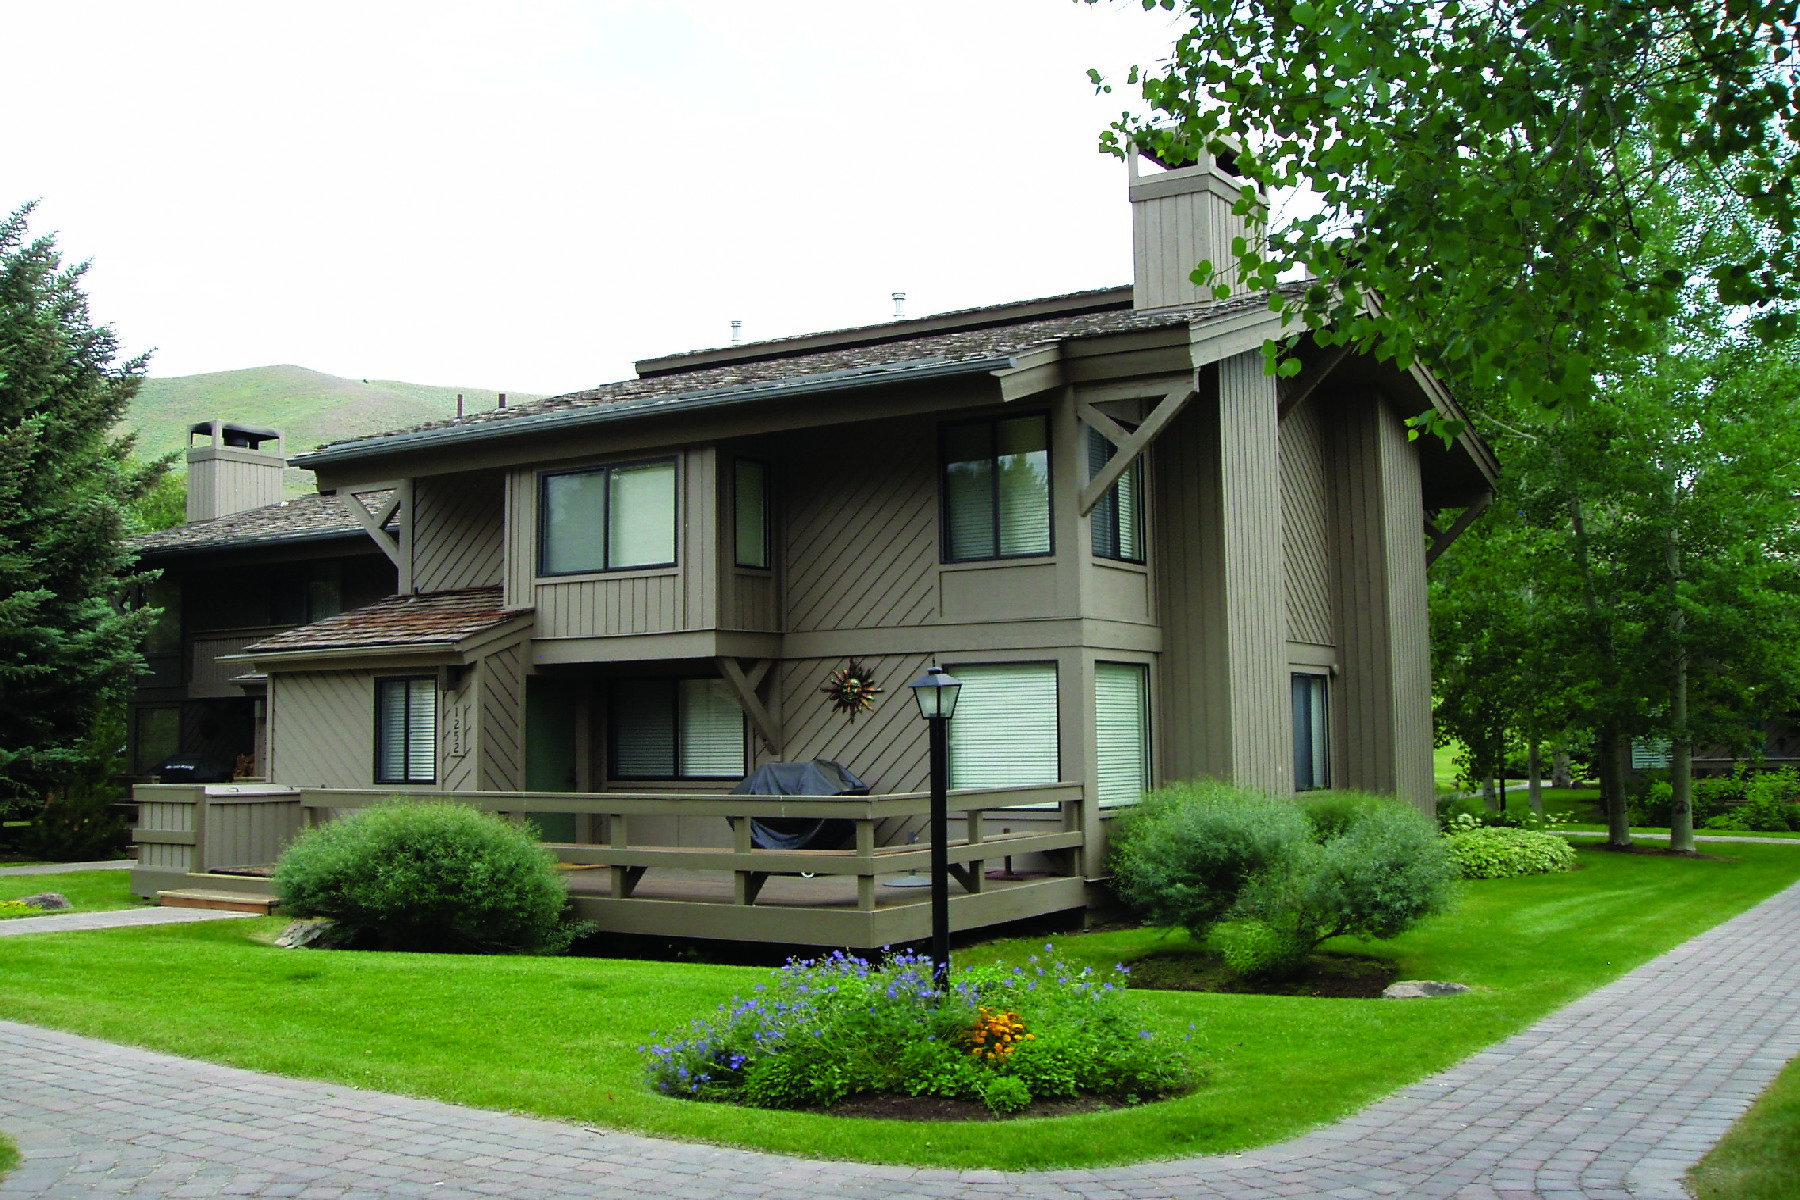 Condominium for Sale at Location Near Sun Valley Village 1252 Villager Condo Sun Valley, Idaho 83353 United States